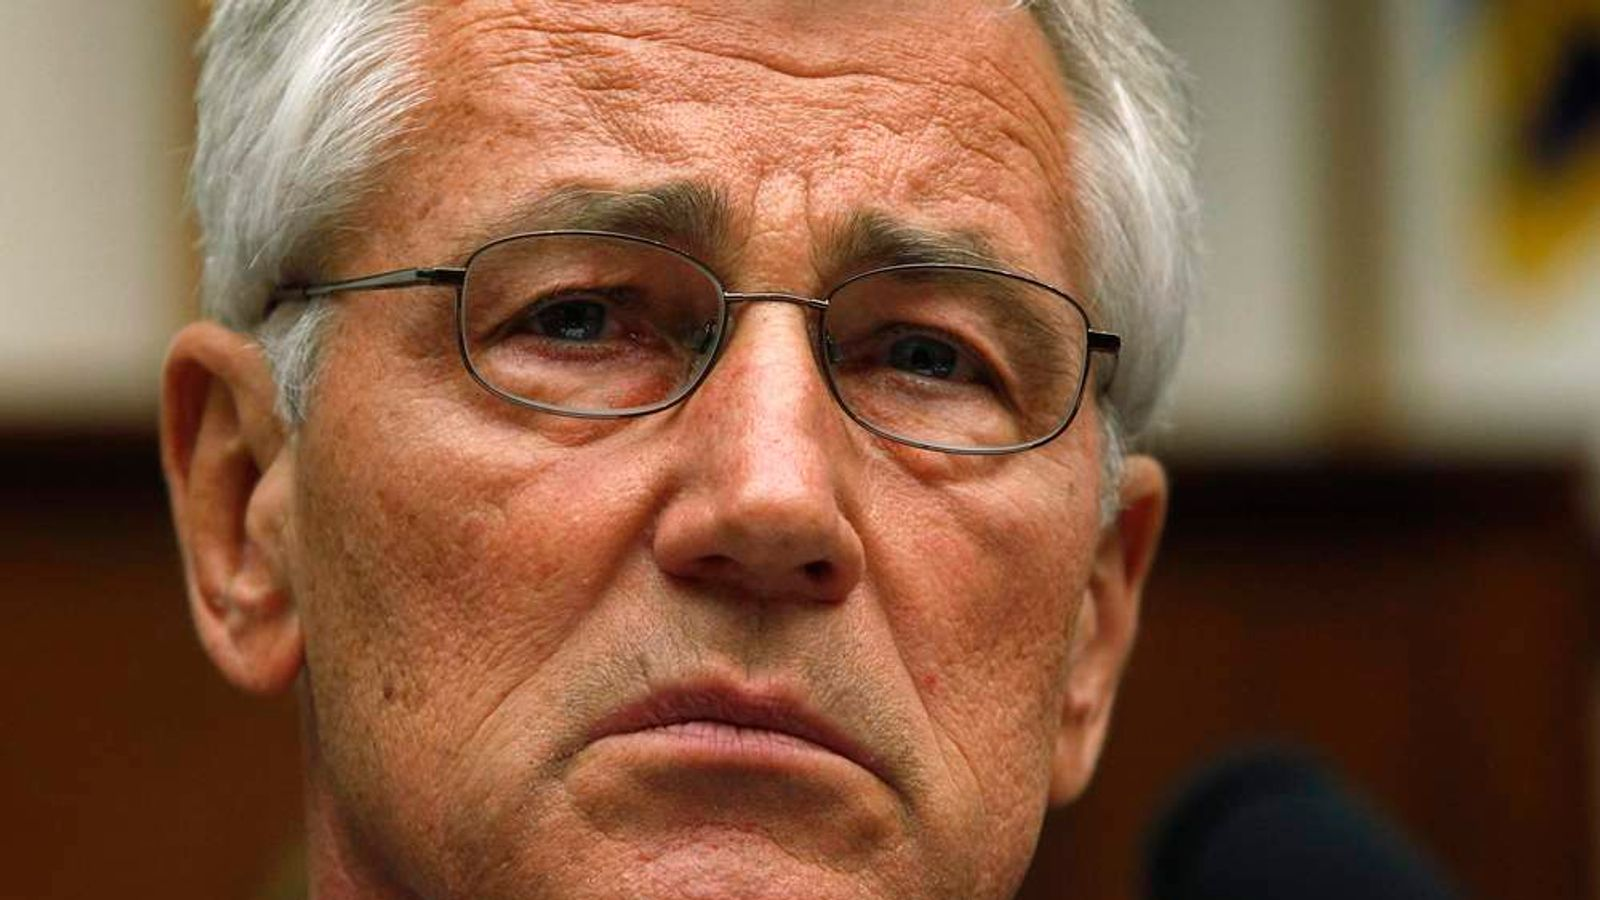 U.S. Defense Secretary Hagel listens to opening statements before testifying about the Bergdahl prisoner exchange on Capitol Hill in Washington